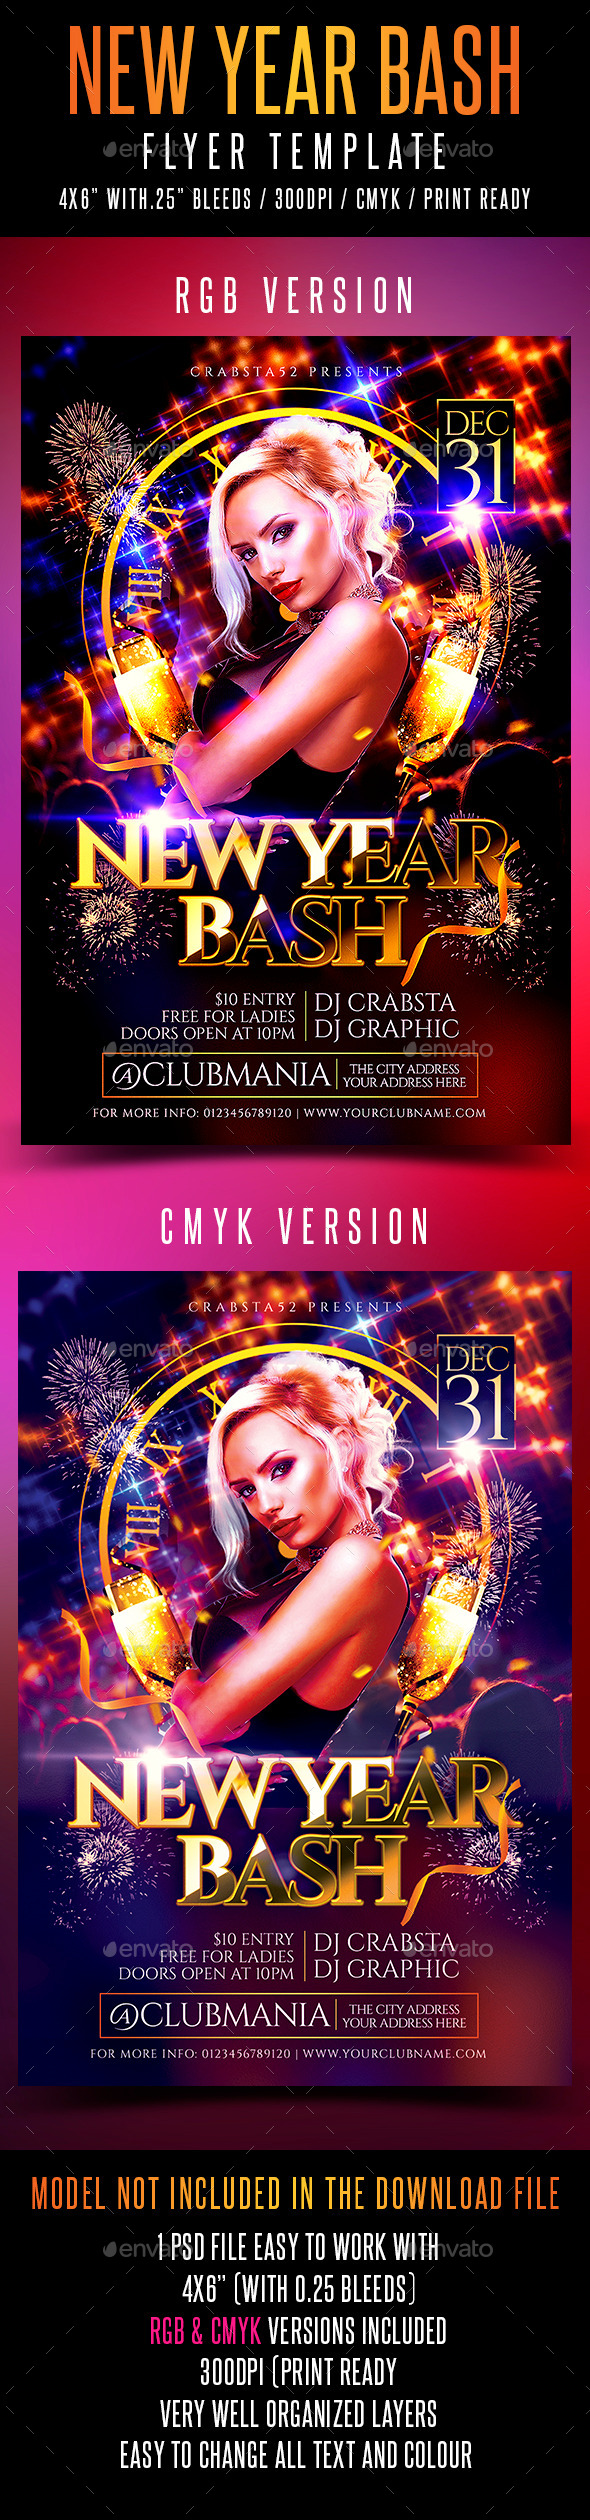 New Year Bash Flyer Template - Flyers Print Templates